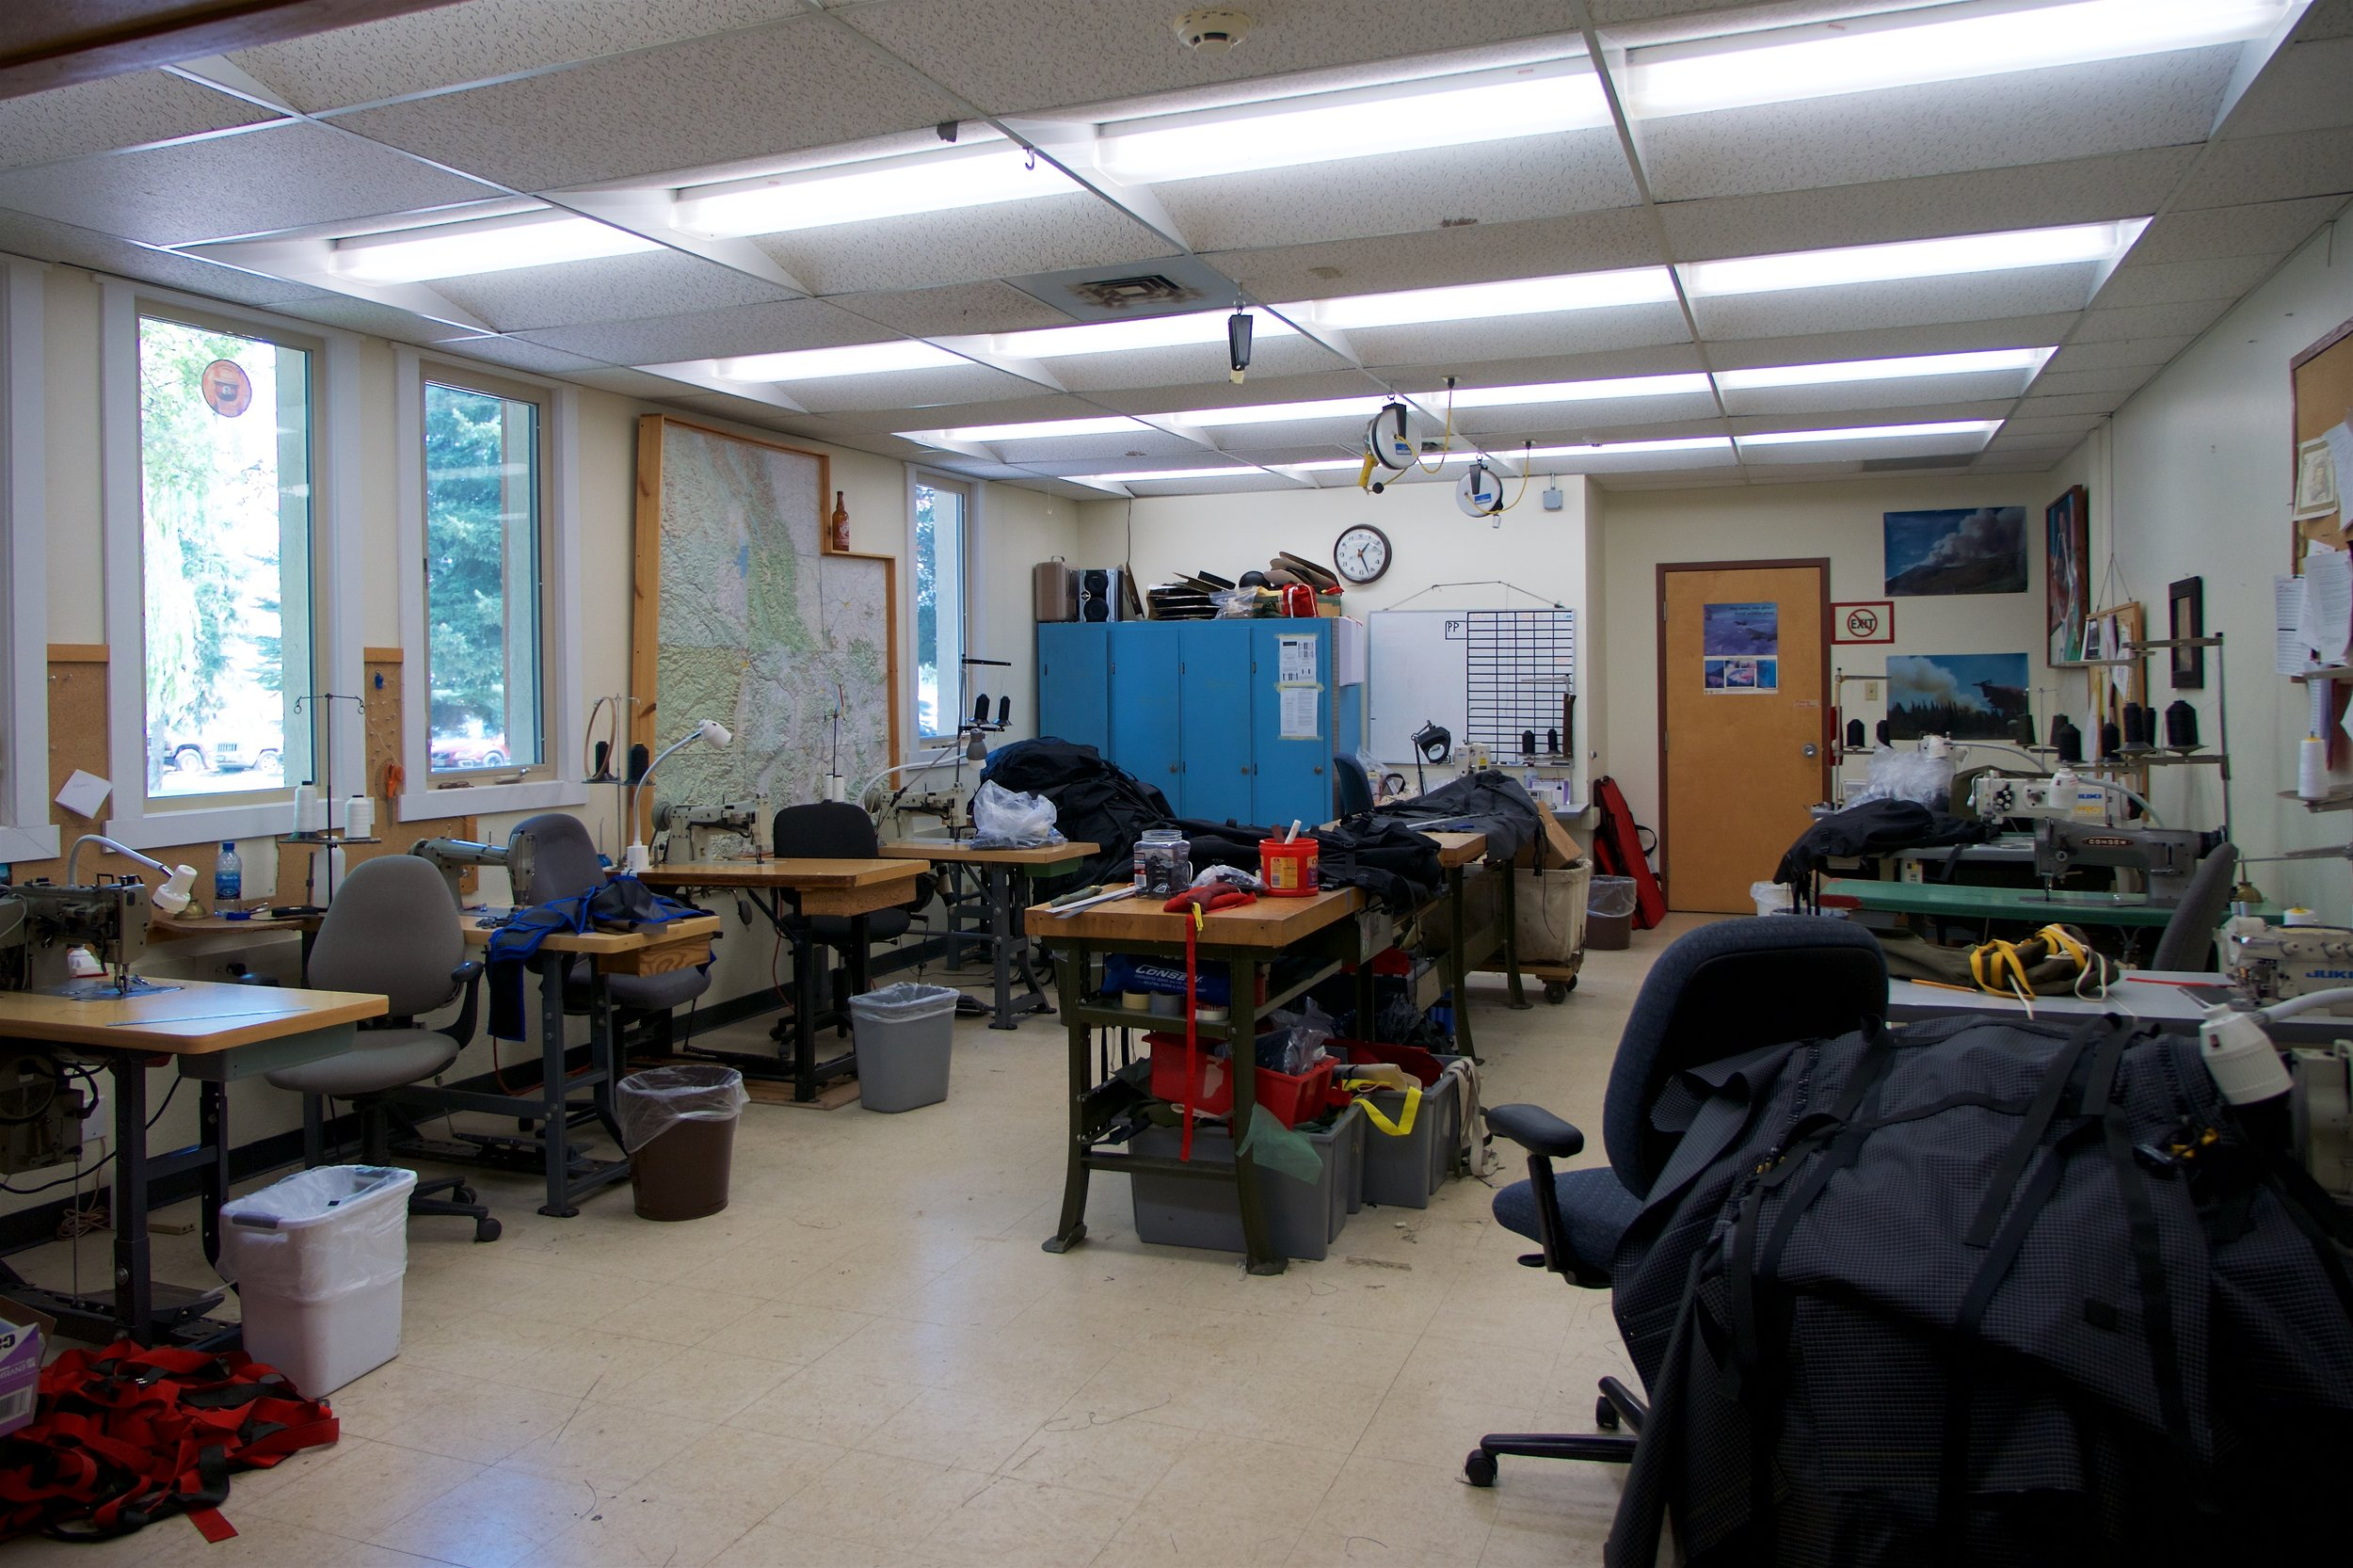 Smokejumper center sewing room